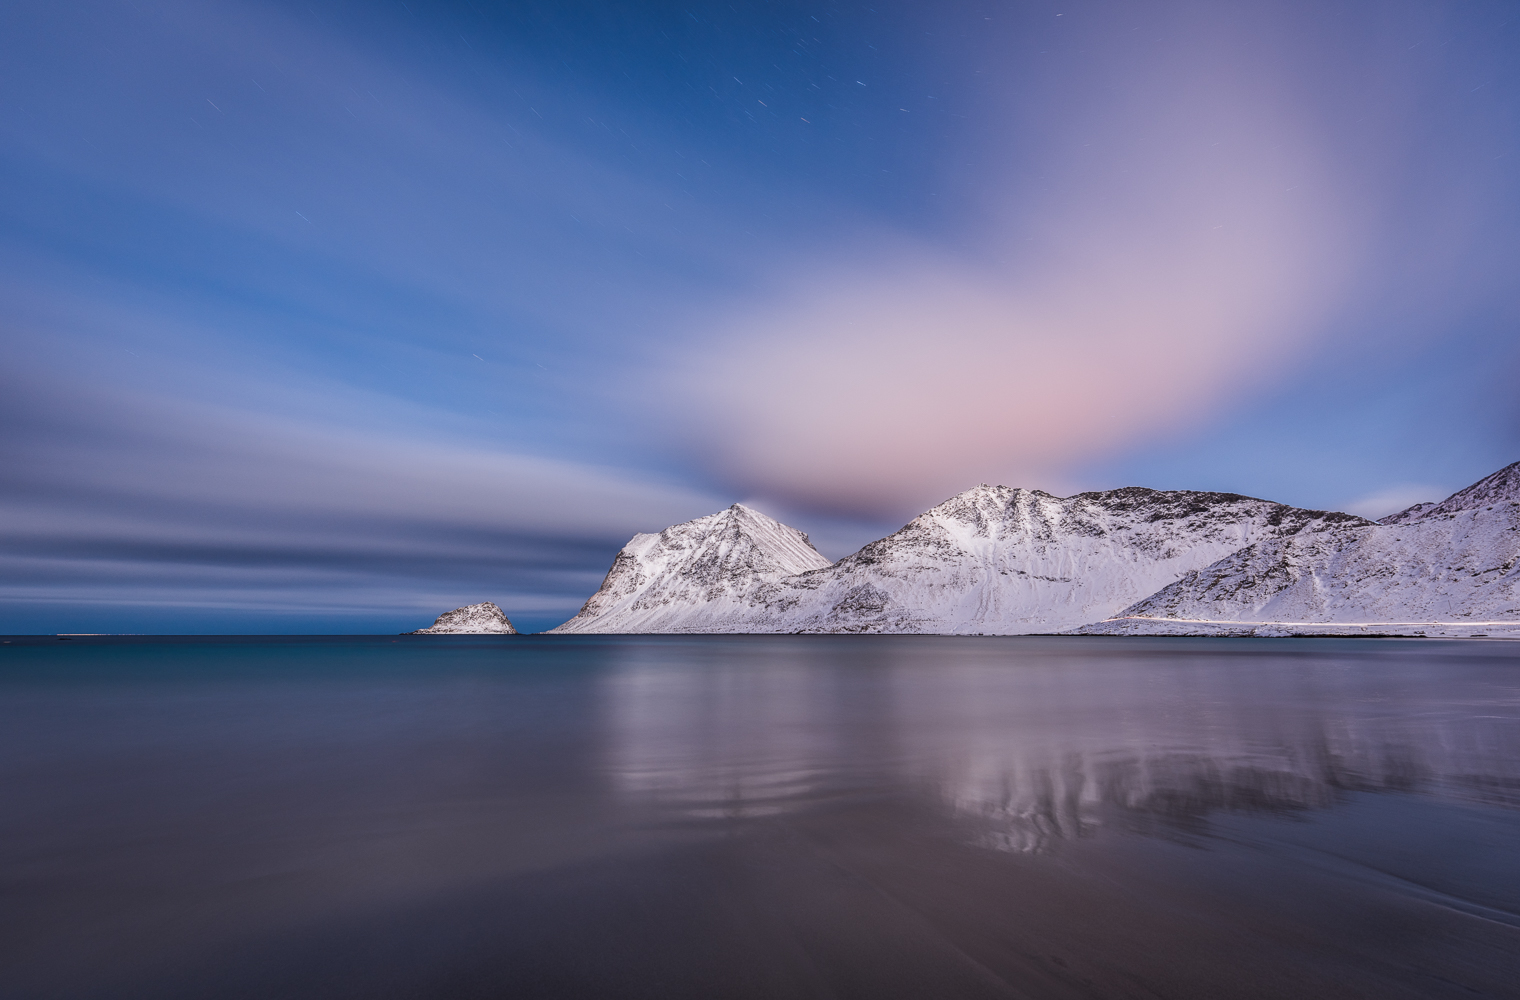 A long exposure at night reveals the most characteristic features of the beach of Vik, Lofoten, because ephemeral elements like the surf are mitigated.